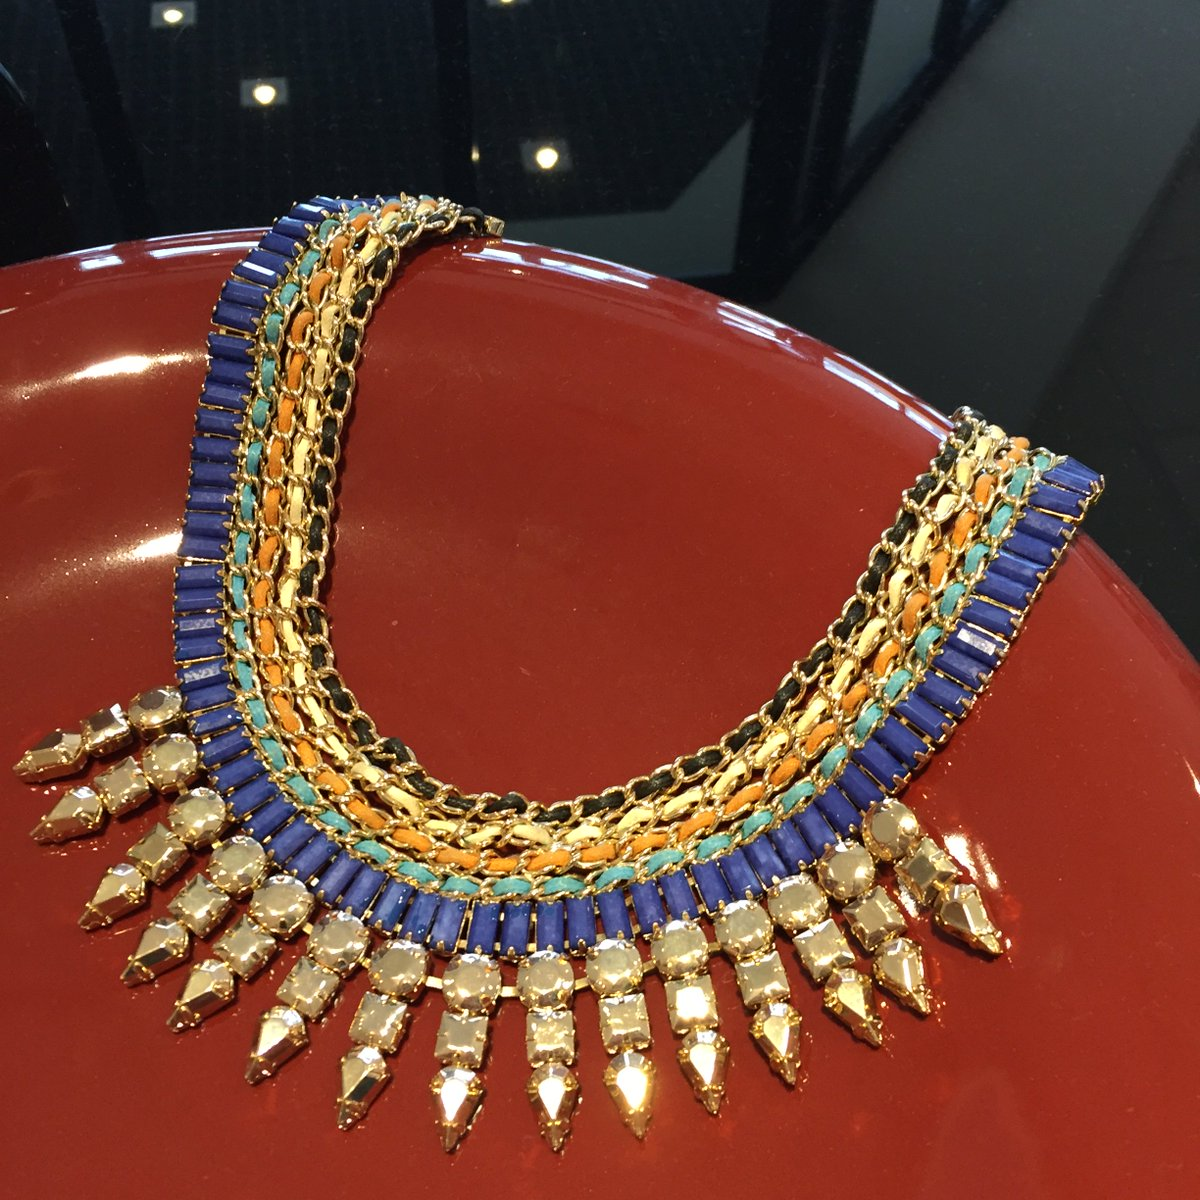 Prize No.3 for #GoodFriday #GreatFriday is this Waterford statement necklace. Just RT for a chance to #Win https://t.co/7mLw40FfJe